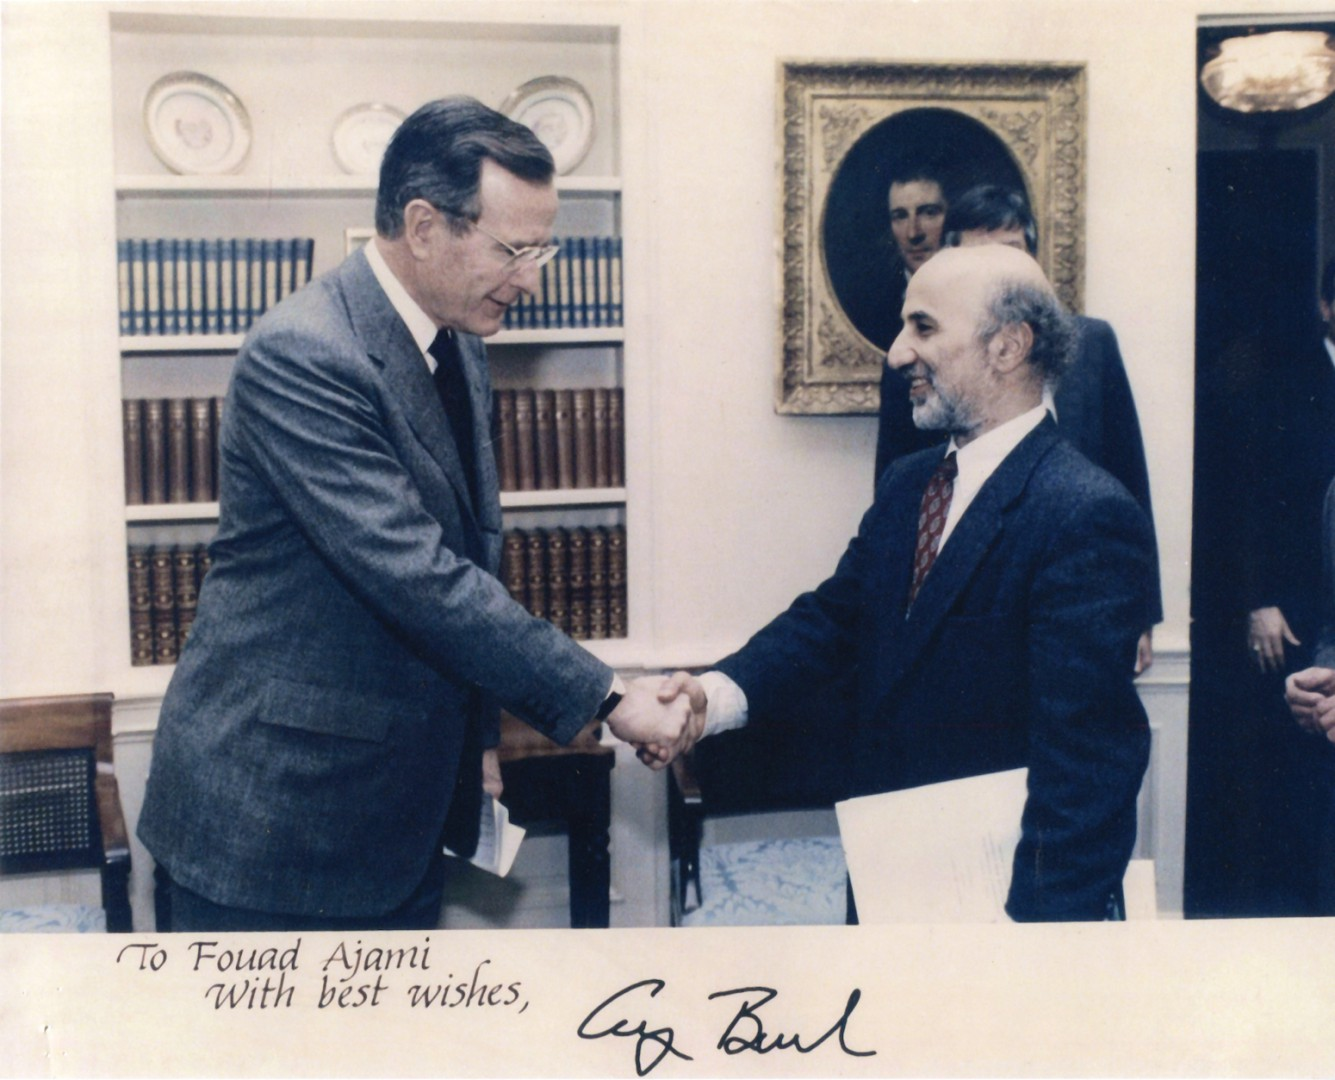 Fouad with President Bush